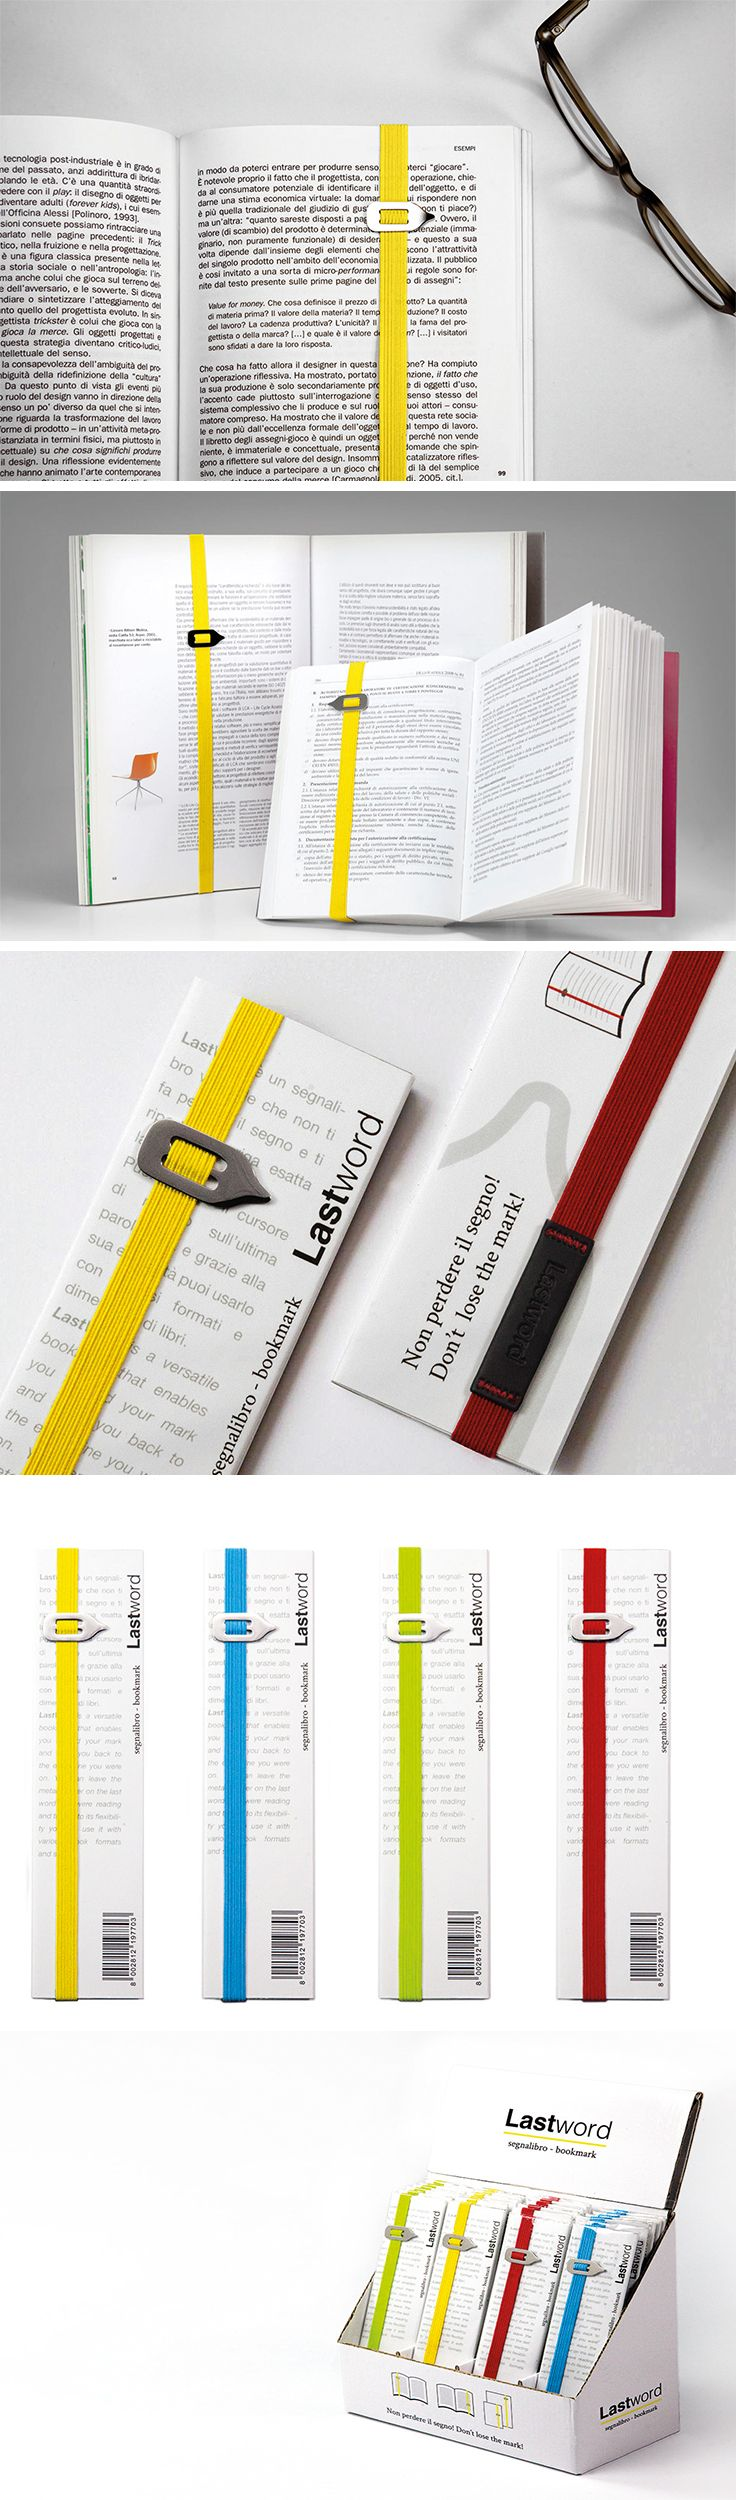 Love to read but also a tad forgetful? You need this! It's called the LastWord and it goes beyond the basic functionality of a bookmark. Not only will it save your page, but it will also mark the precise word you on which you left off. Just adjust the placement and metal tab to indicate the right part. Made from stretchy elastic fabric in a variety of funky colors, they can adapt to any size book and give it a cool suspenders-esque look!